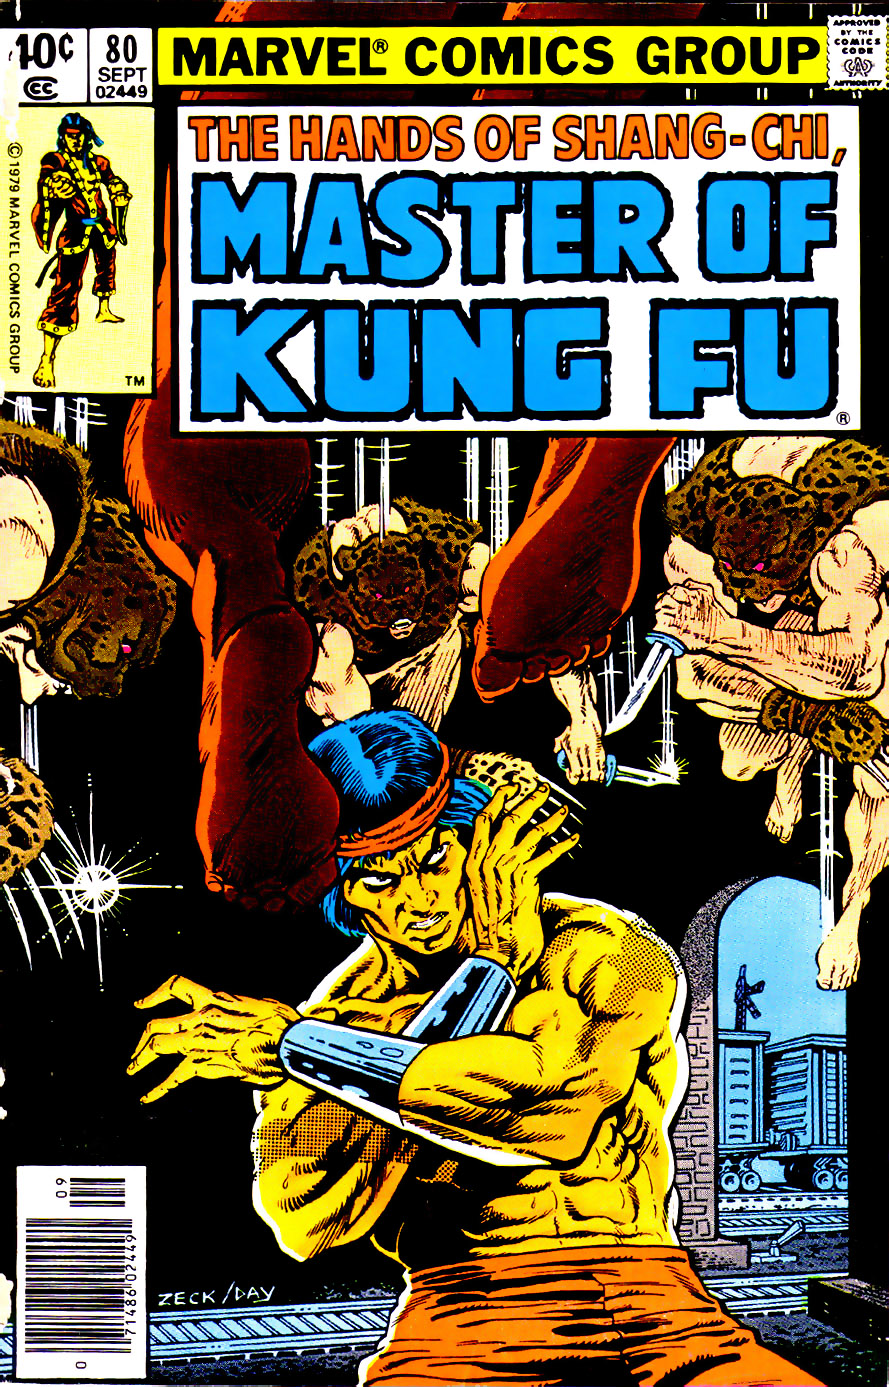 Master of Kung Fu (1974) issue 80 - Page 1